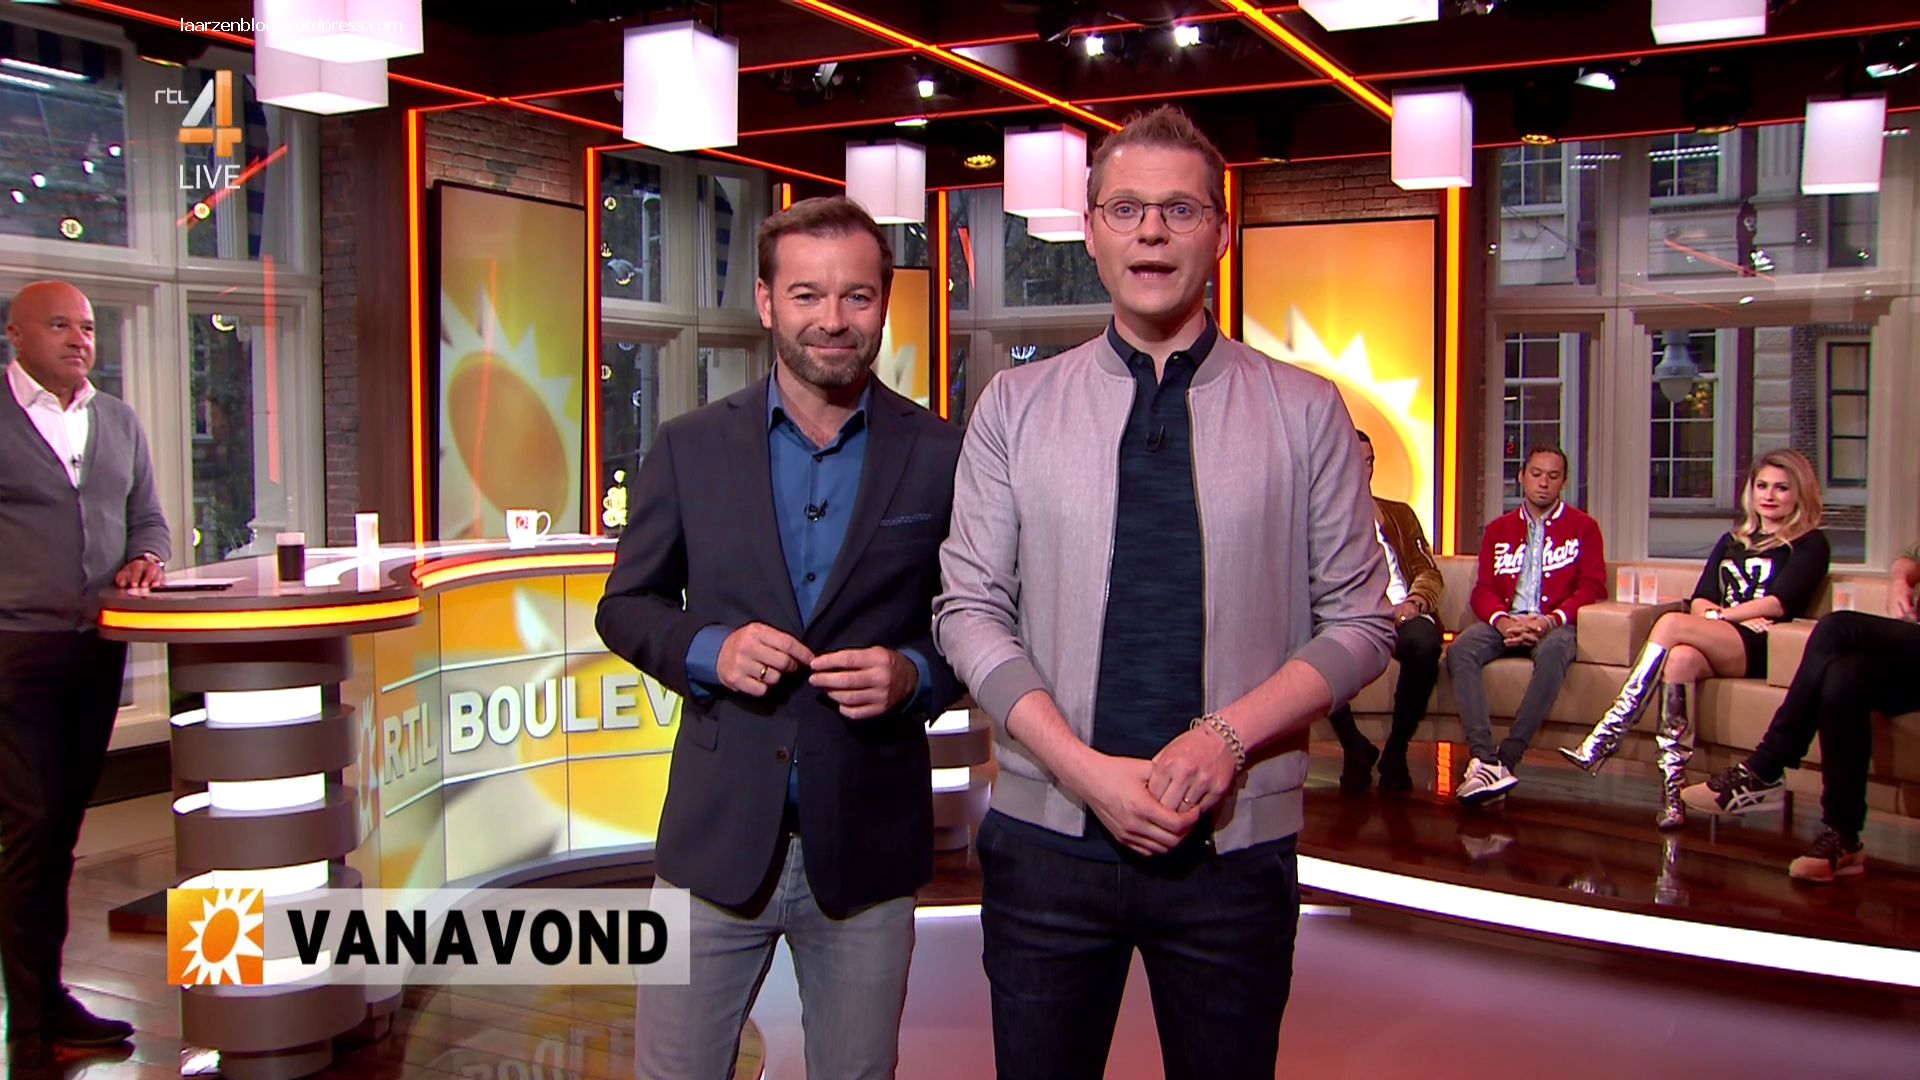 RTL Boulevard is the biggest entertainment show on television. Each night between 1 - 1,5 million people tune in for the latest news on celebrities, royals, crime, scandals and pop culture. The show celebrated their 15th anniversary in 2016 and launched an online platform in 2017.